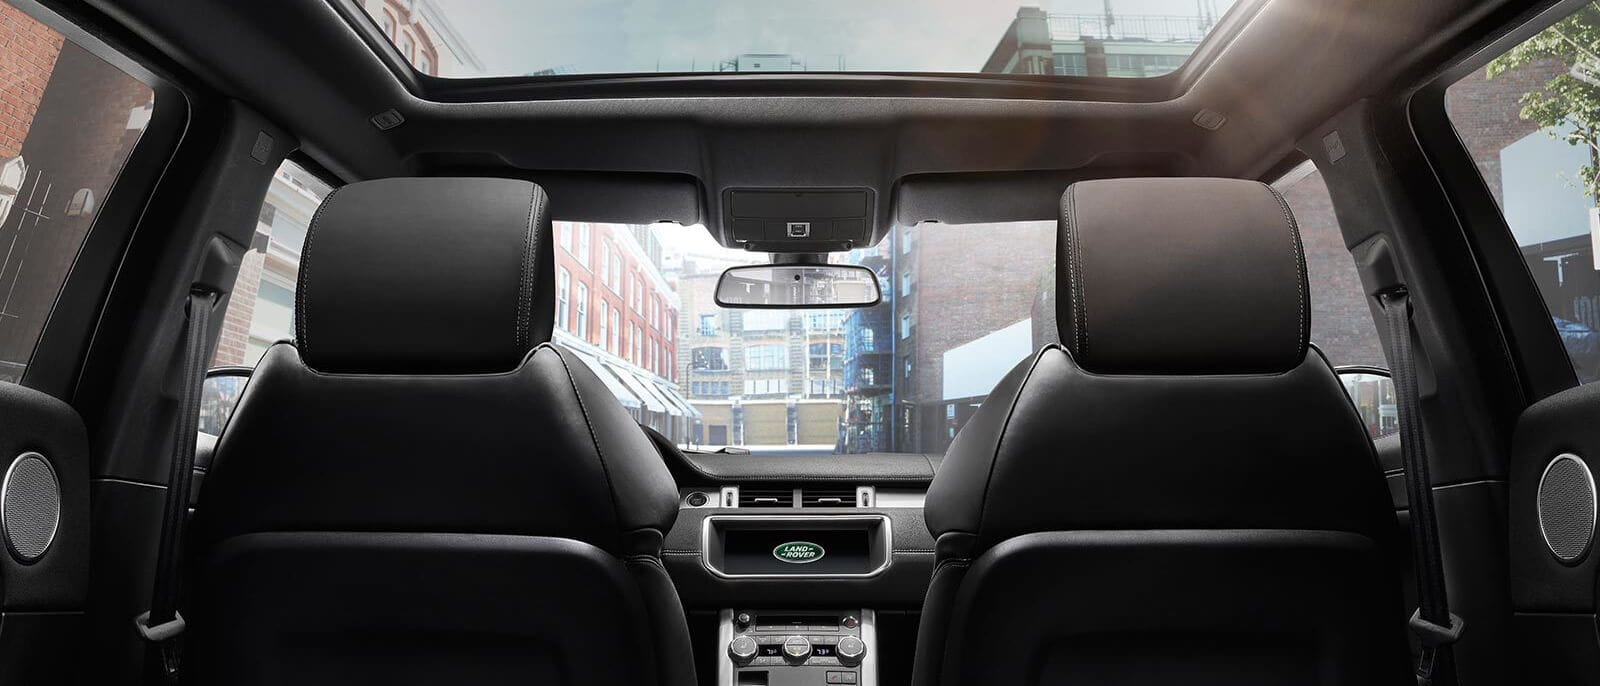 2017 land rover range rover evoque coupe at land rover. Black Bedroom Furniture Sets. Home Design Ideas